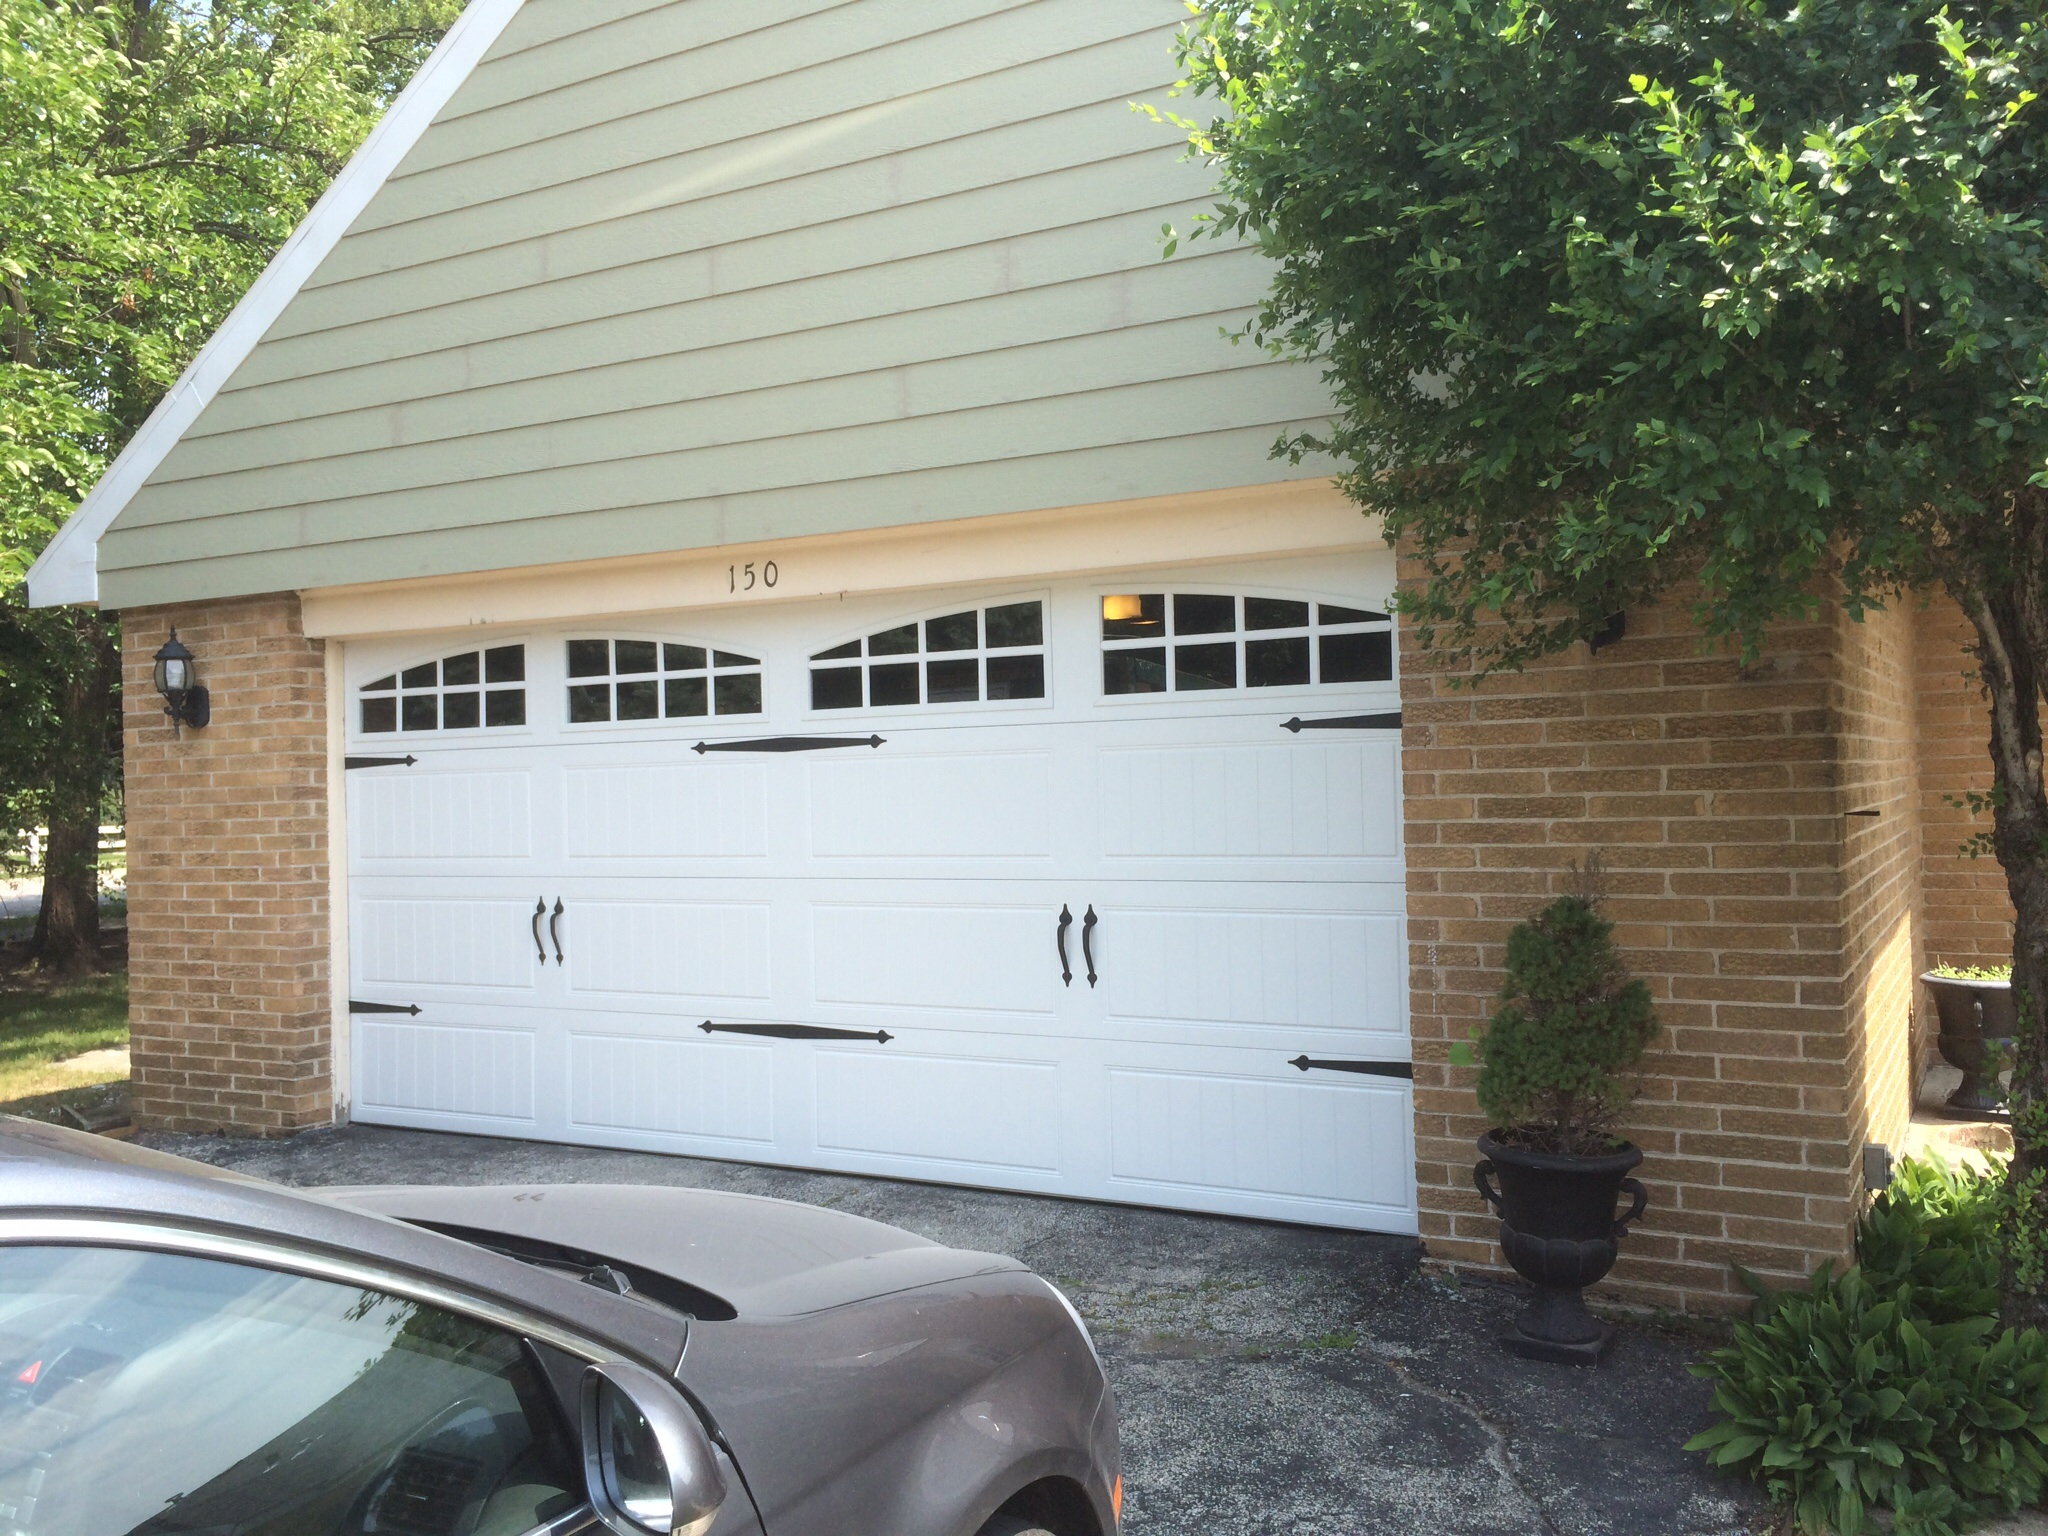 Residential garage door repair service in chicago kg for Residential garage door repair